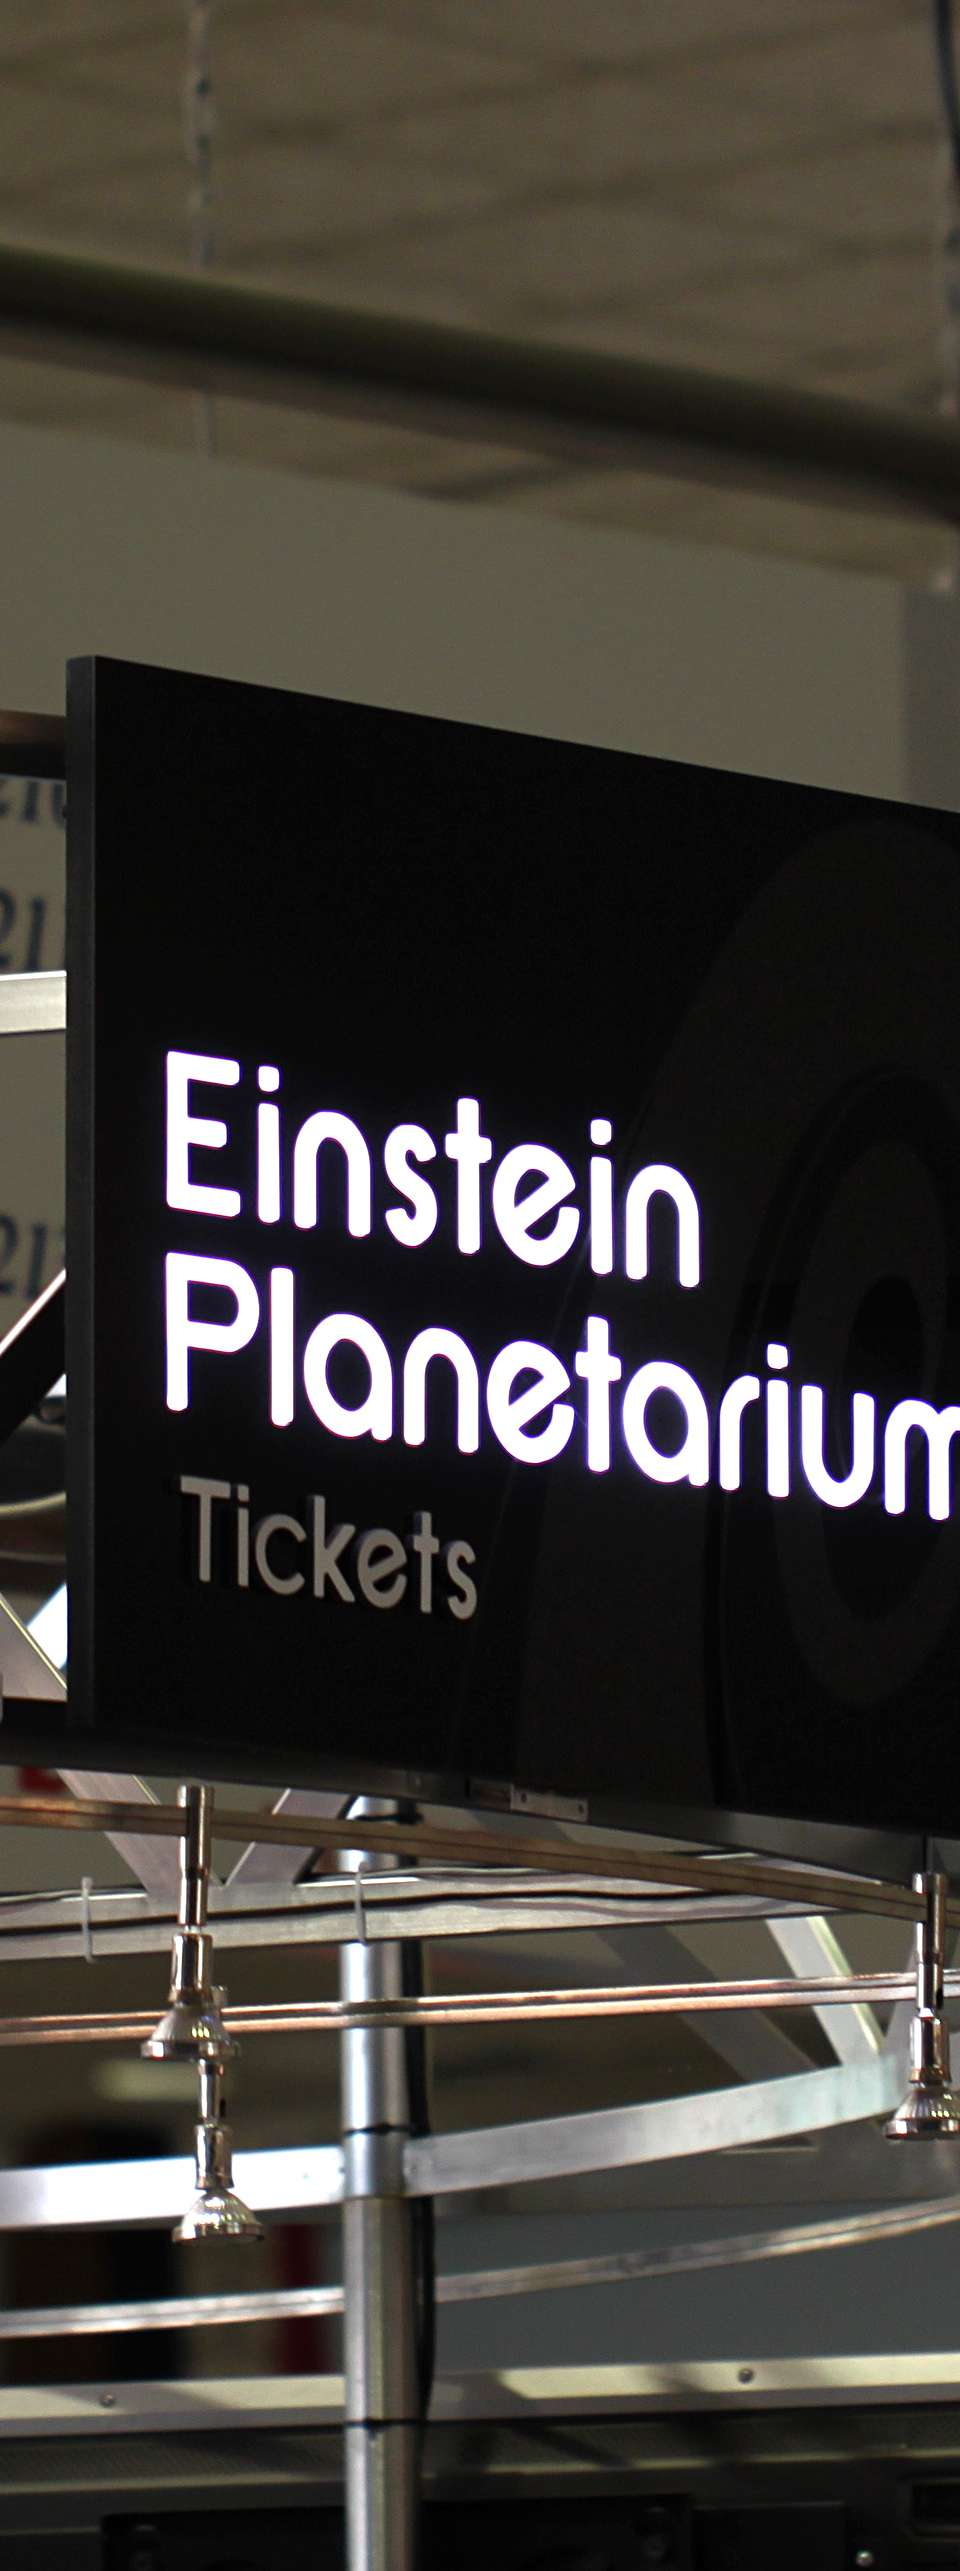 Sign for the planetarium tickets